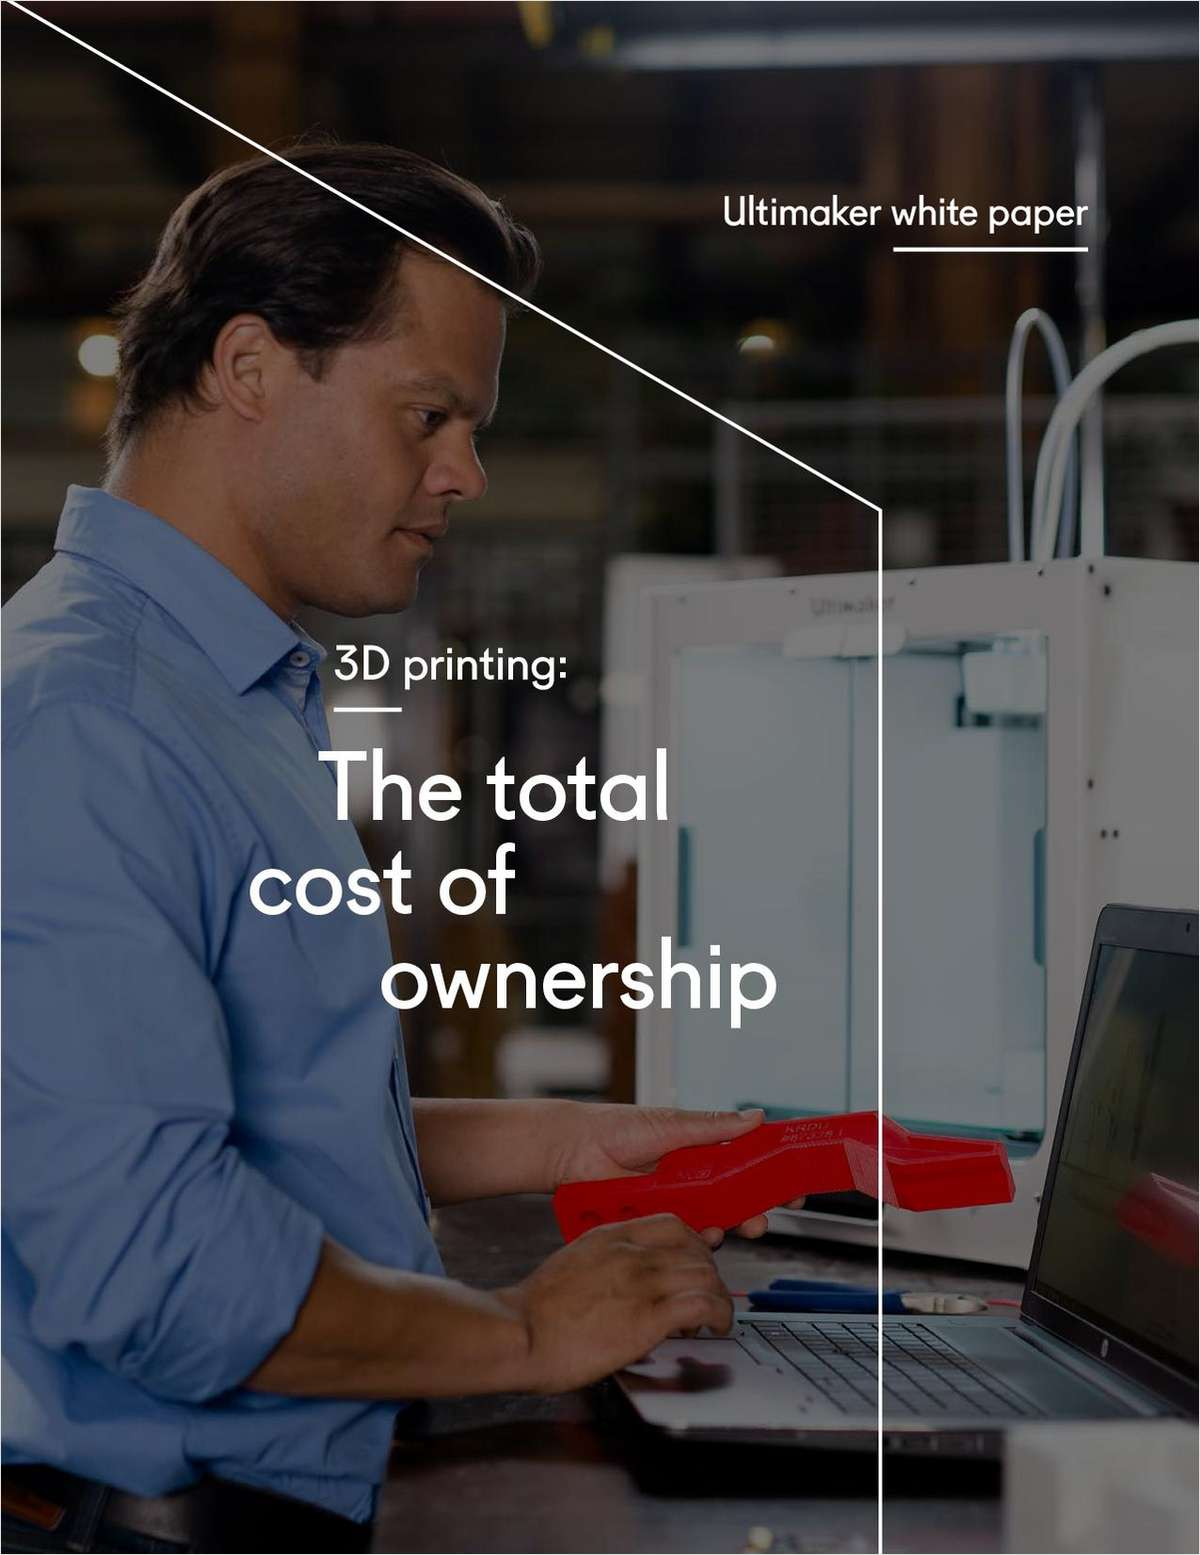 3D printing: The total cost of ownership